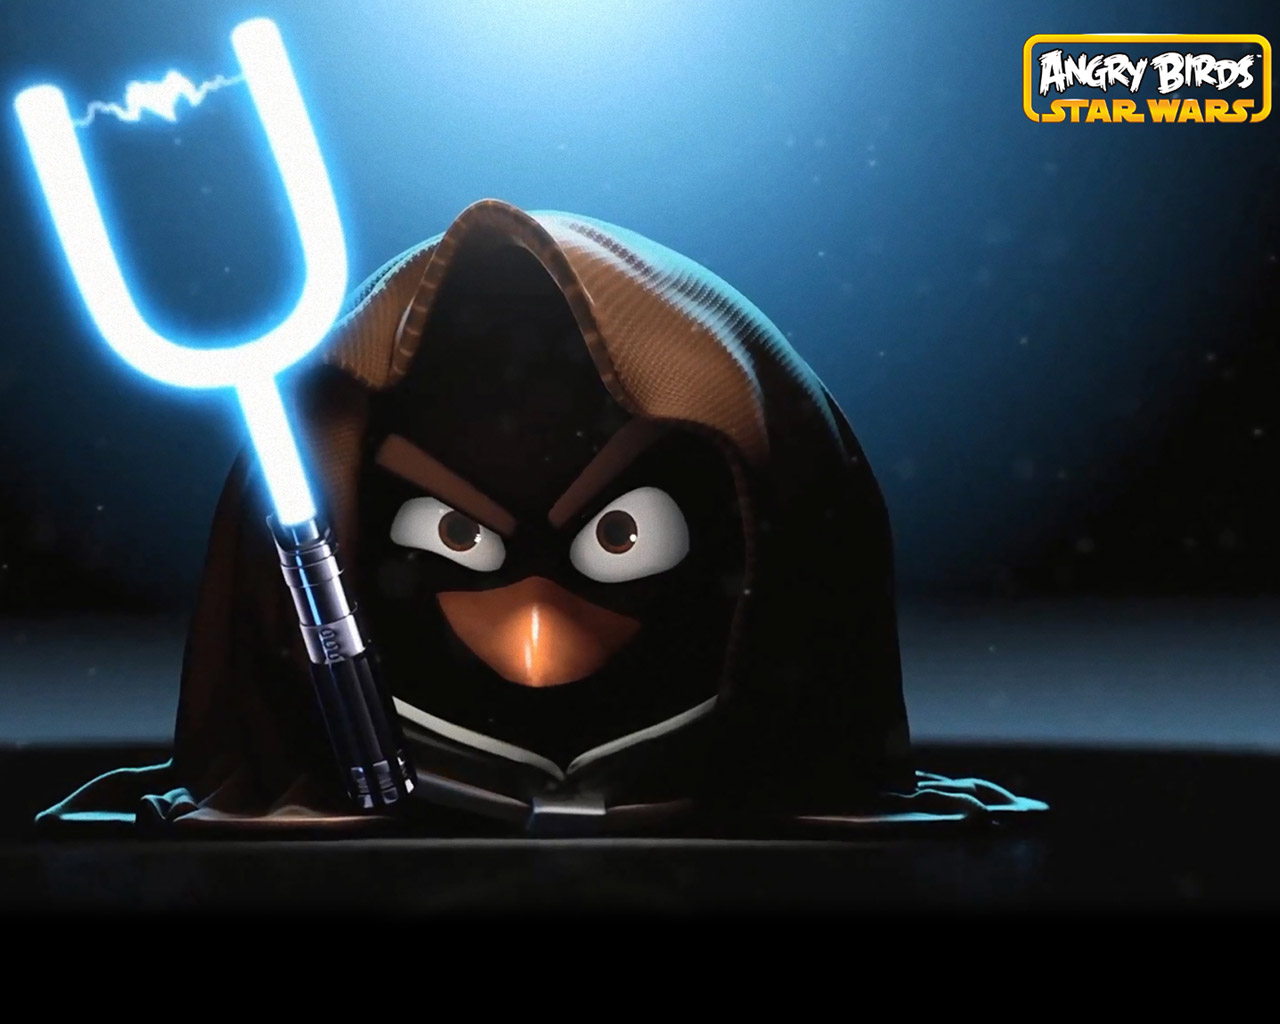 Free Angry Birds: Star Wars Wallpaper in 1280x1024